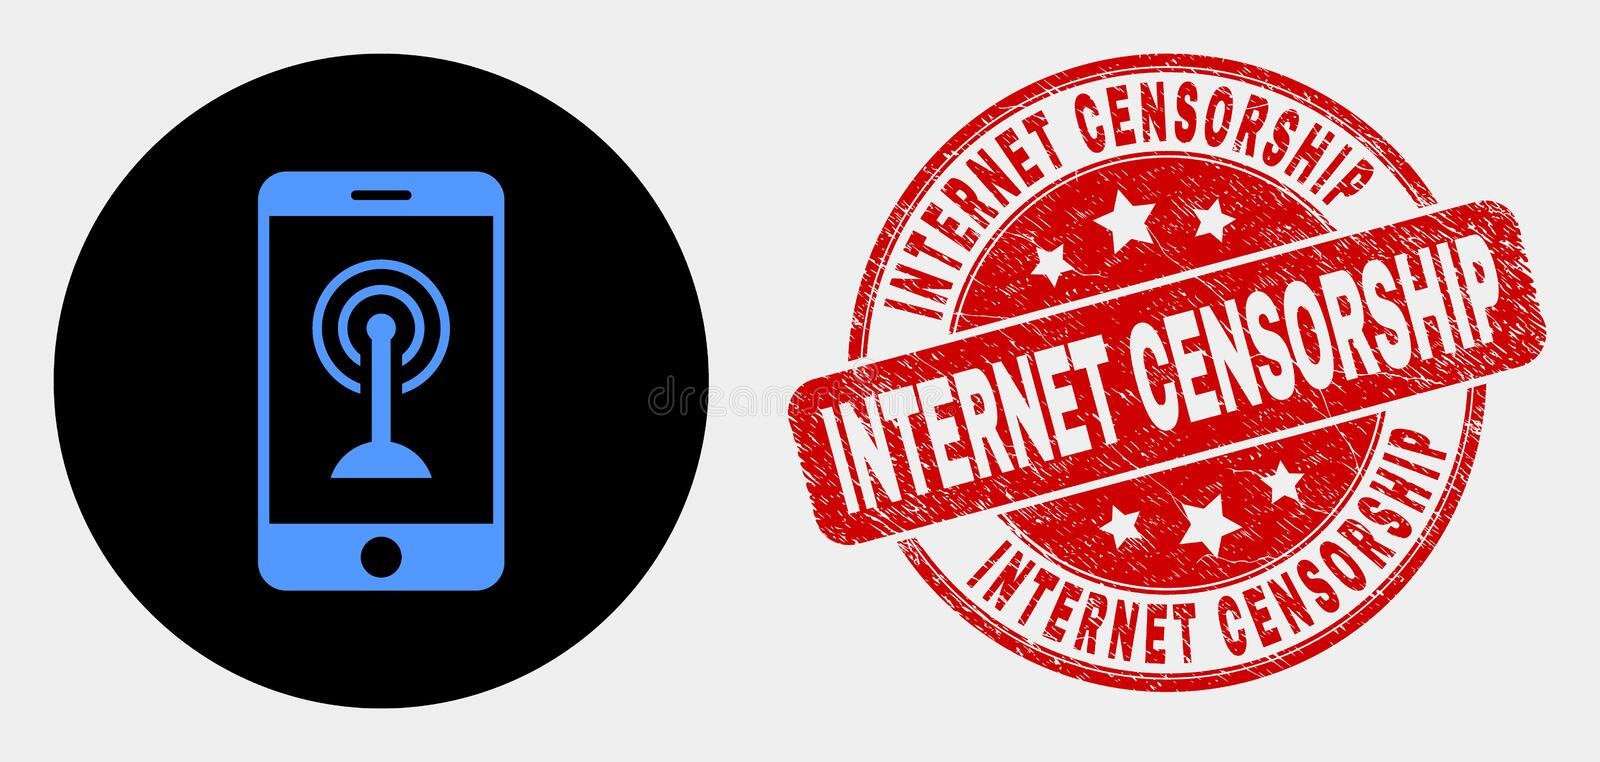 Vector Smartphone Wi-Fi Hotspot Icon and Distress Internet Censorship Seal. Rounded smartphone wi-fi hotspot pictogram and Internet Censorship seal. Red rounded vector illustration